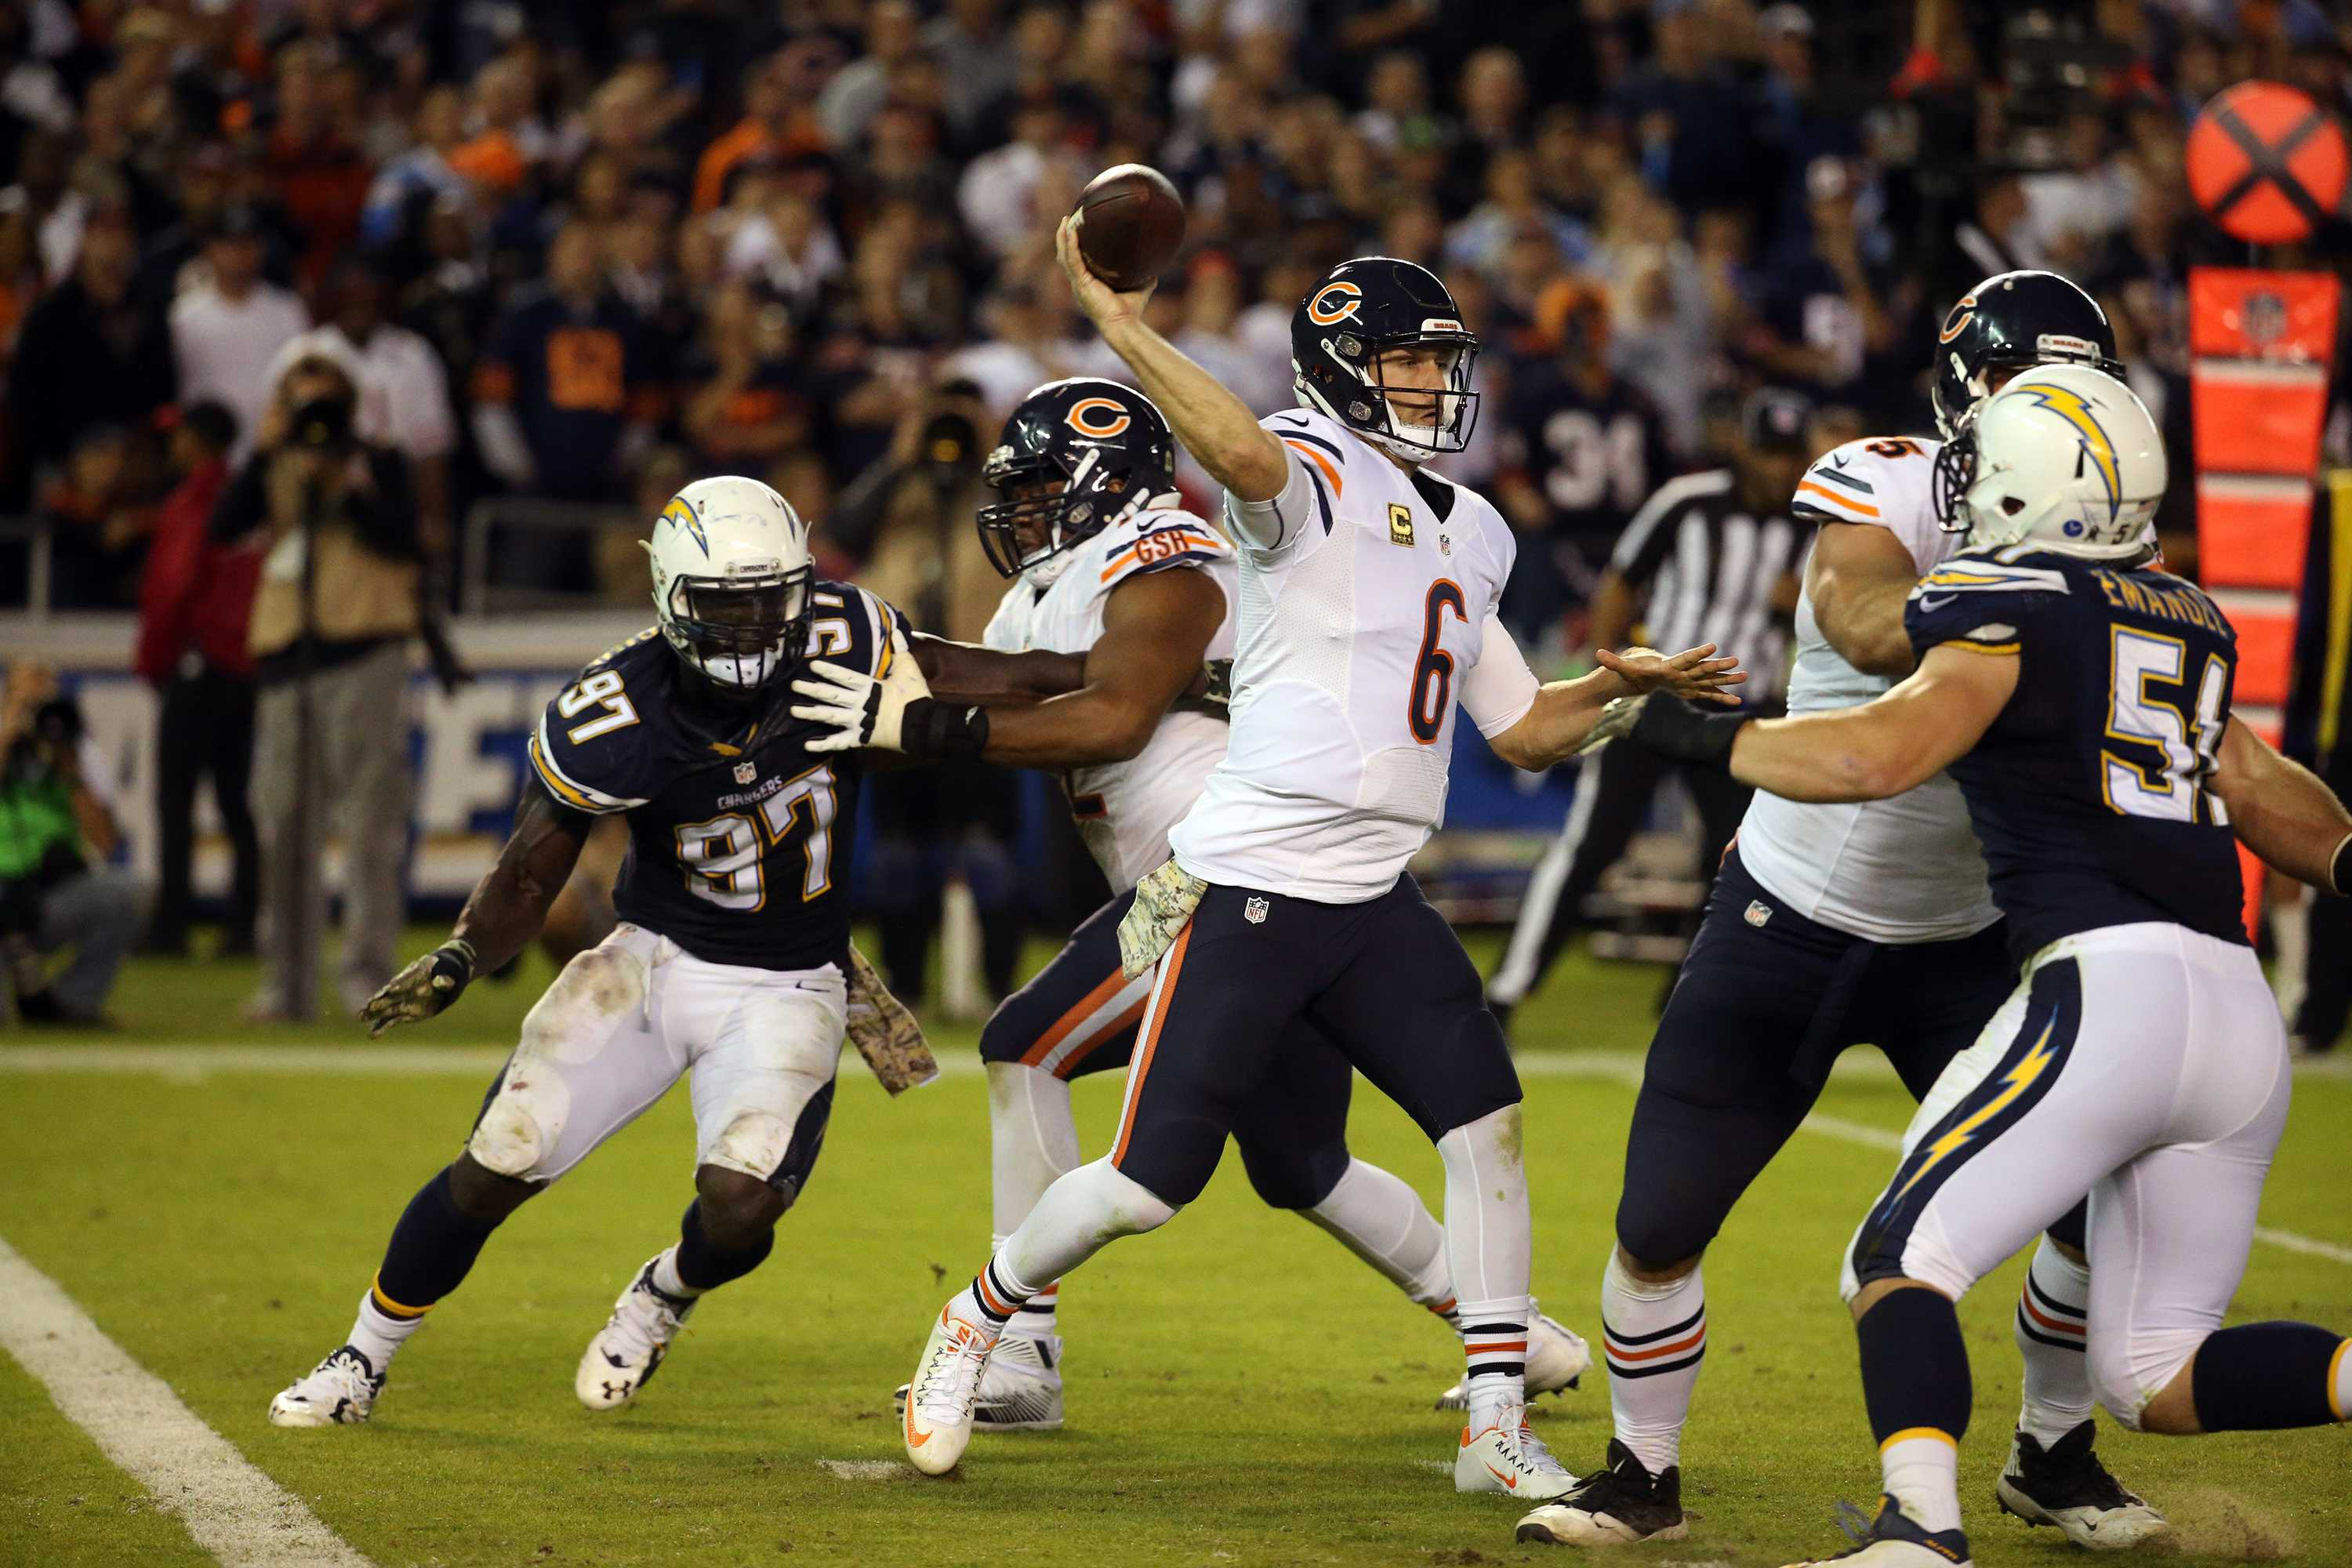 Chicago Bears quarterback Jay Cutler (6) passes as San Diego Chargers outside linebacker Jeremiah Attaochu (97) rushes during the third quarter on Monday, Nov. 9, 2015, at Qualcomm Stadium in San Diego. (Brian Cassella/Chicago Tribune/TNS)